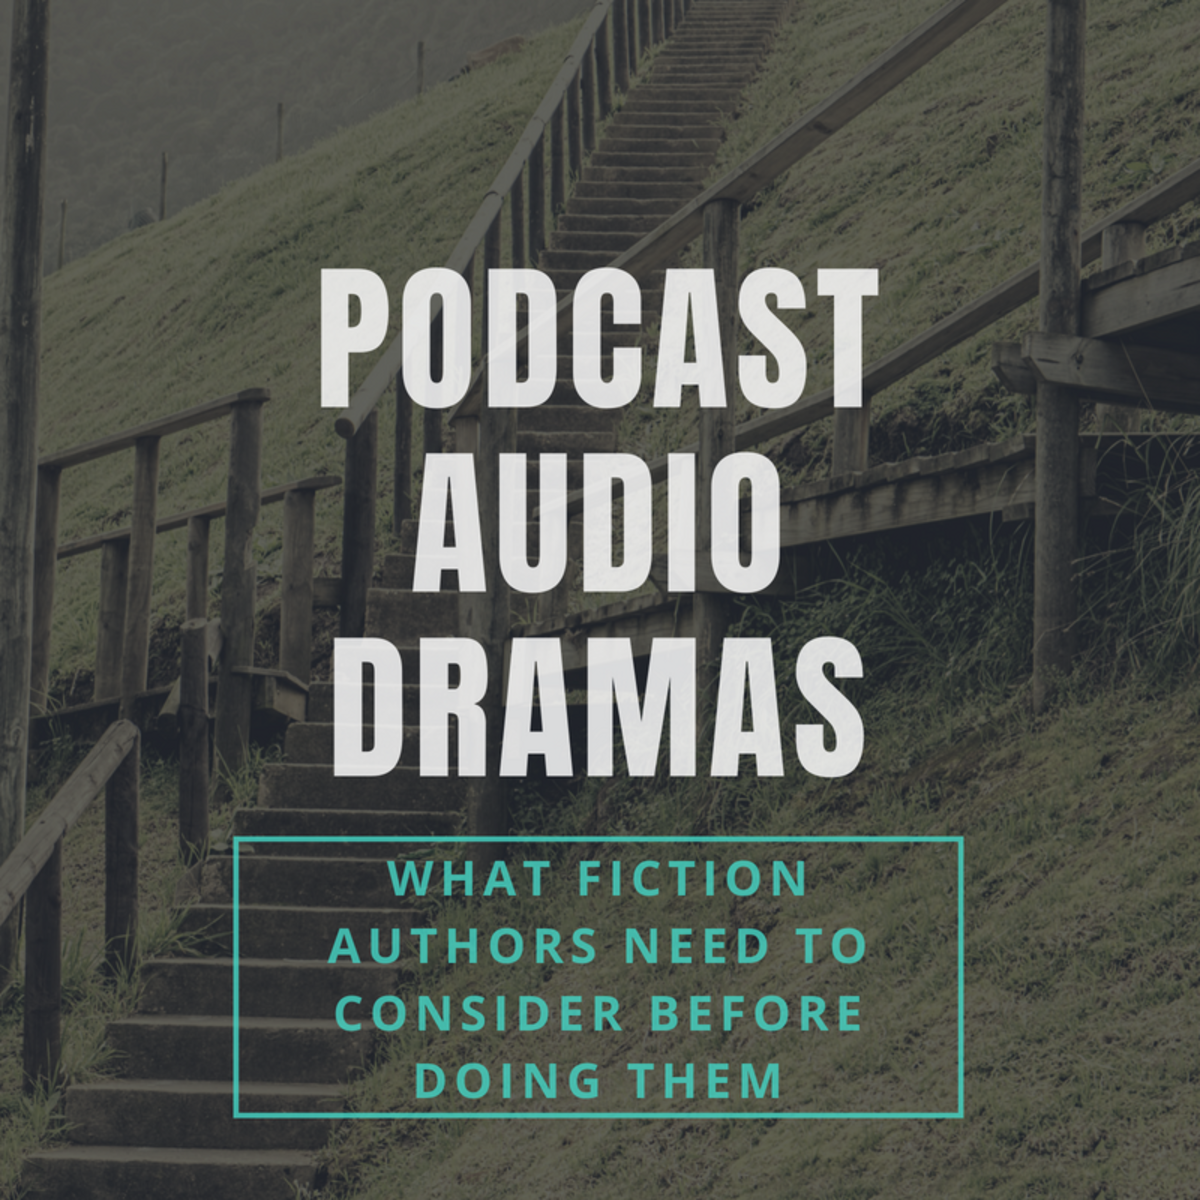 Podcast Audio Dramas: What Fiction Authors Need to Consider